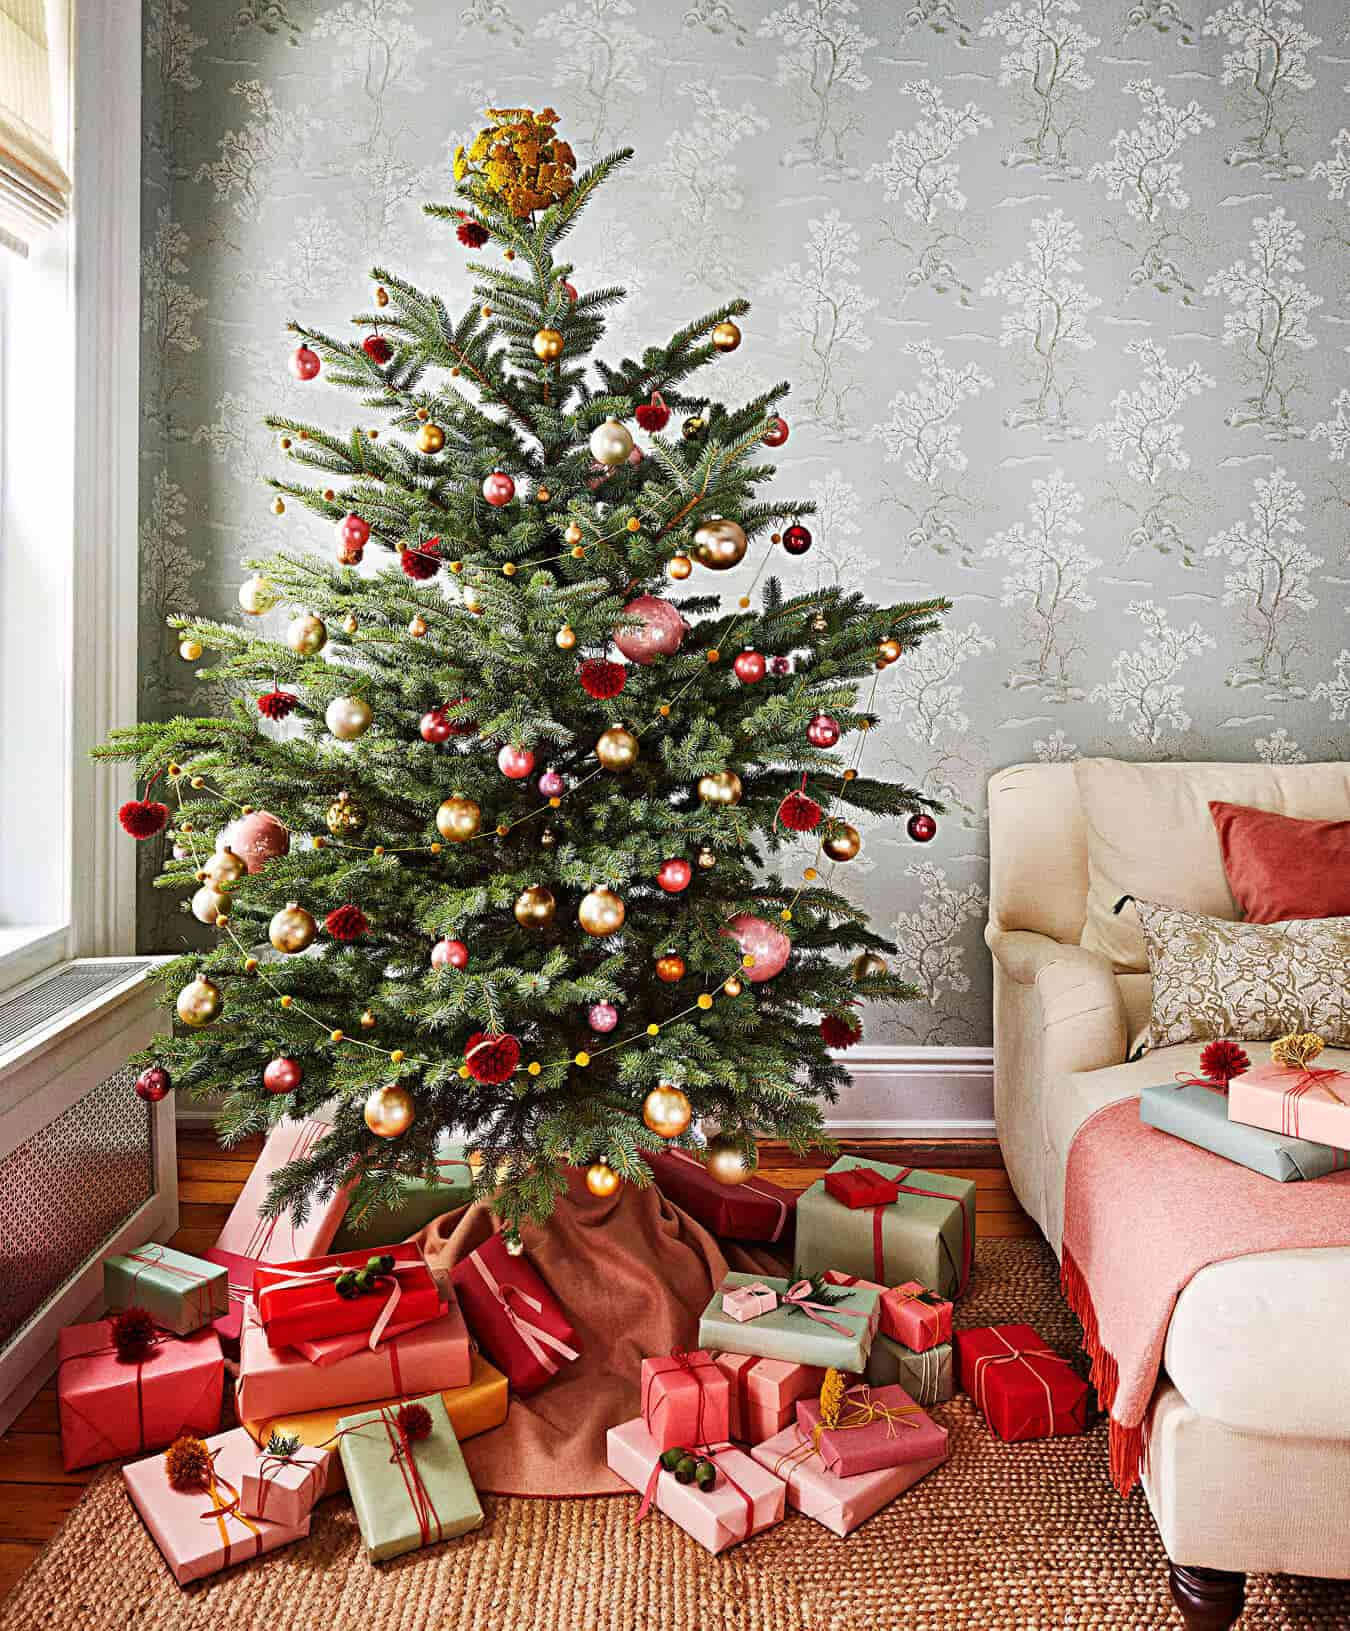 Christmas Tree Safety Tips and Ideas